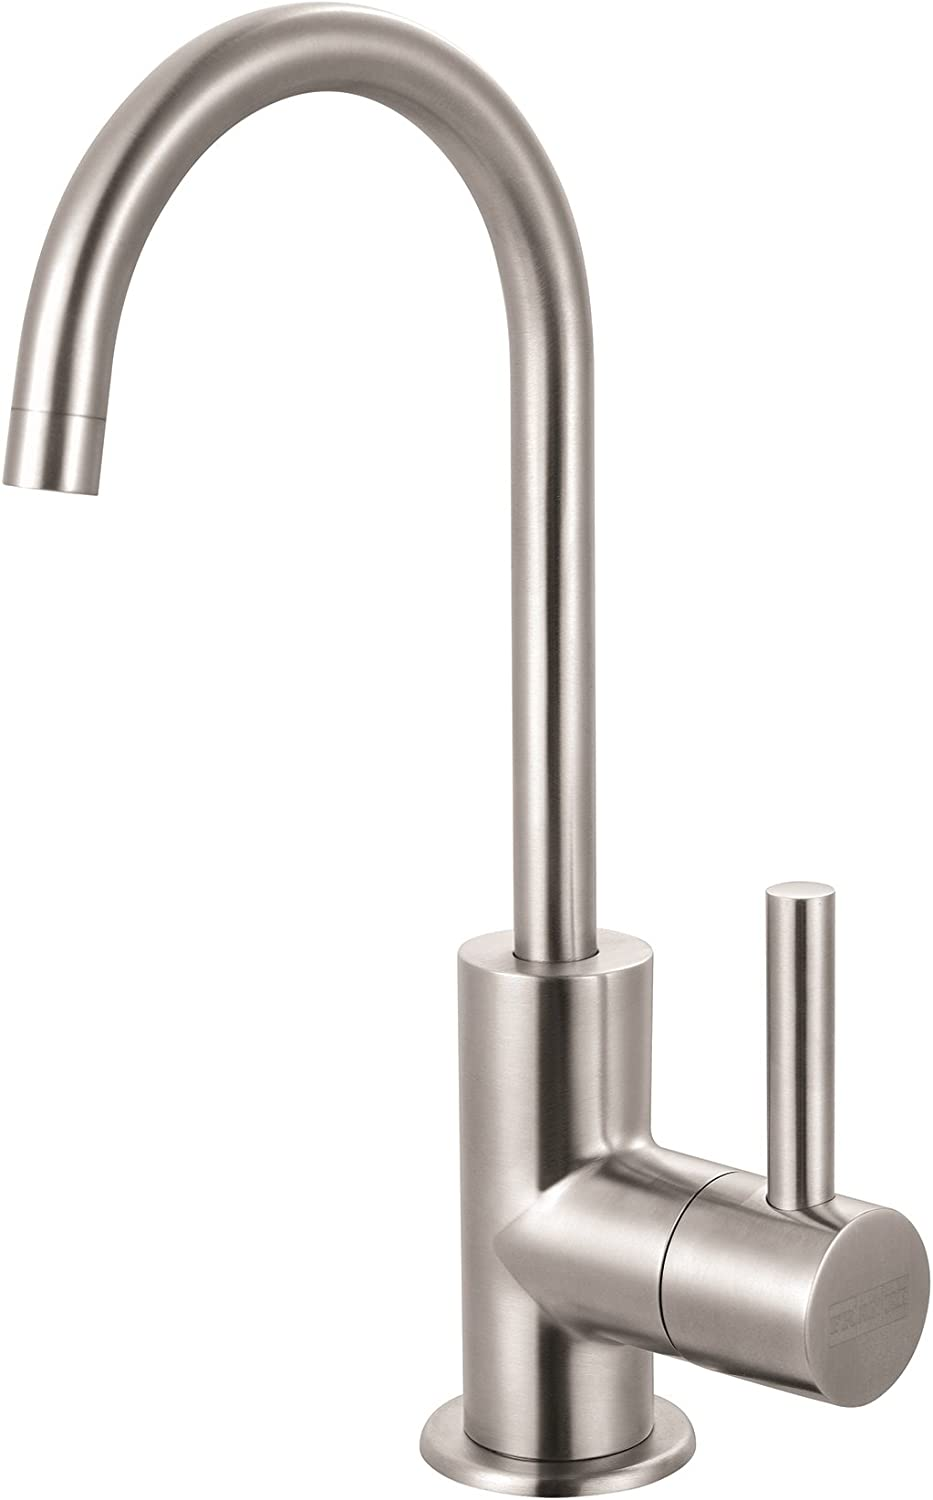 Franke DW13050 Faucet, 11 inch, Stainless Steel